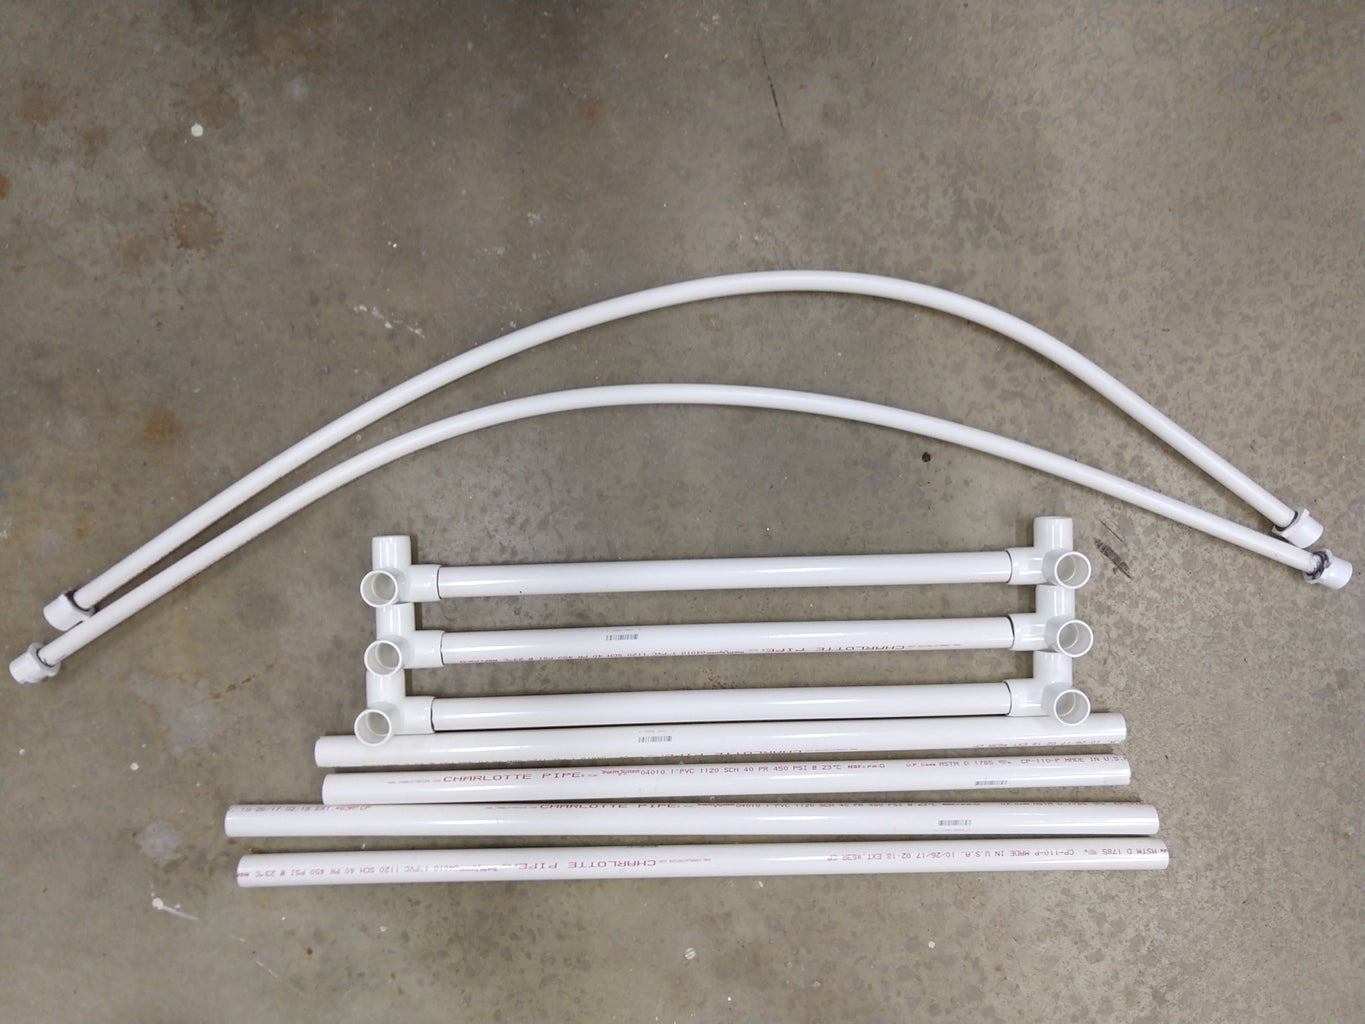 Step 3 - Bending the Arches